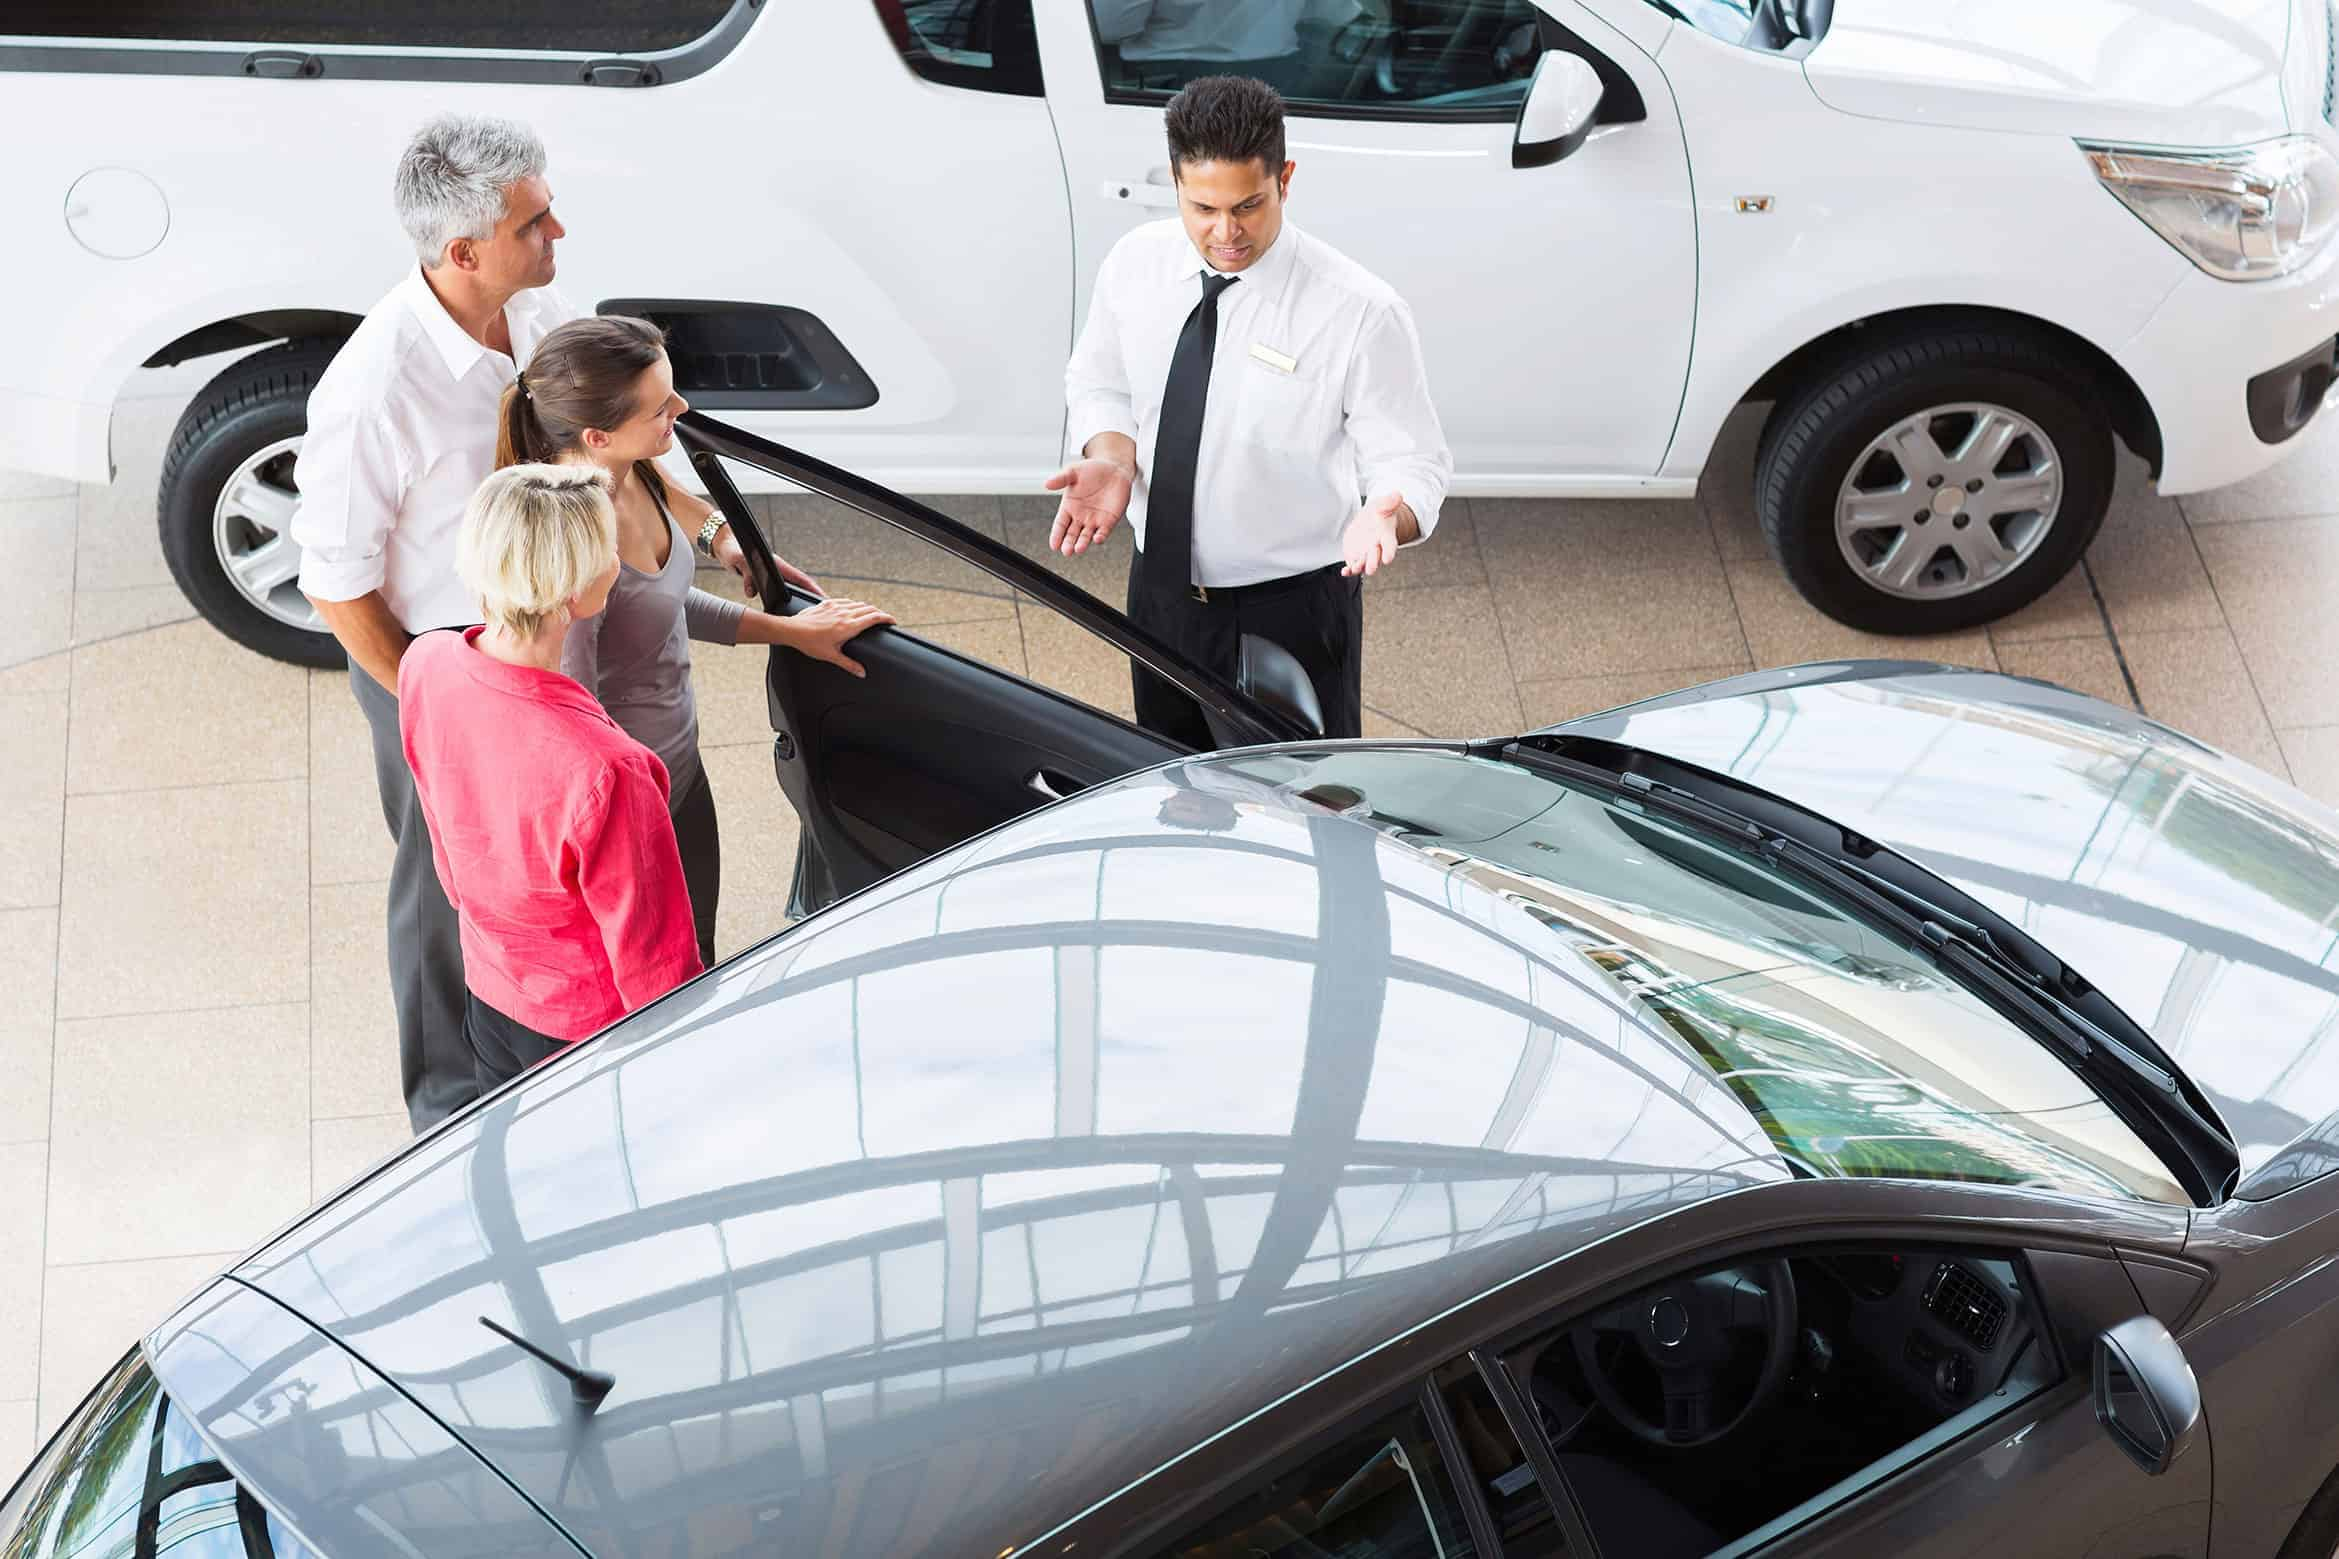 Mother, father and daughter speak with car salesman about purchasing new vehicle.